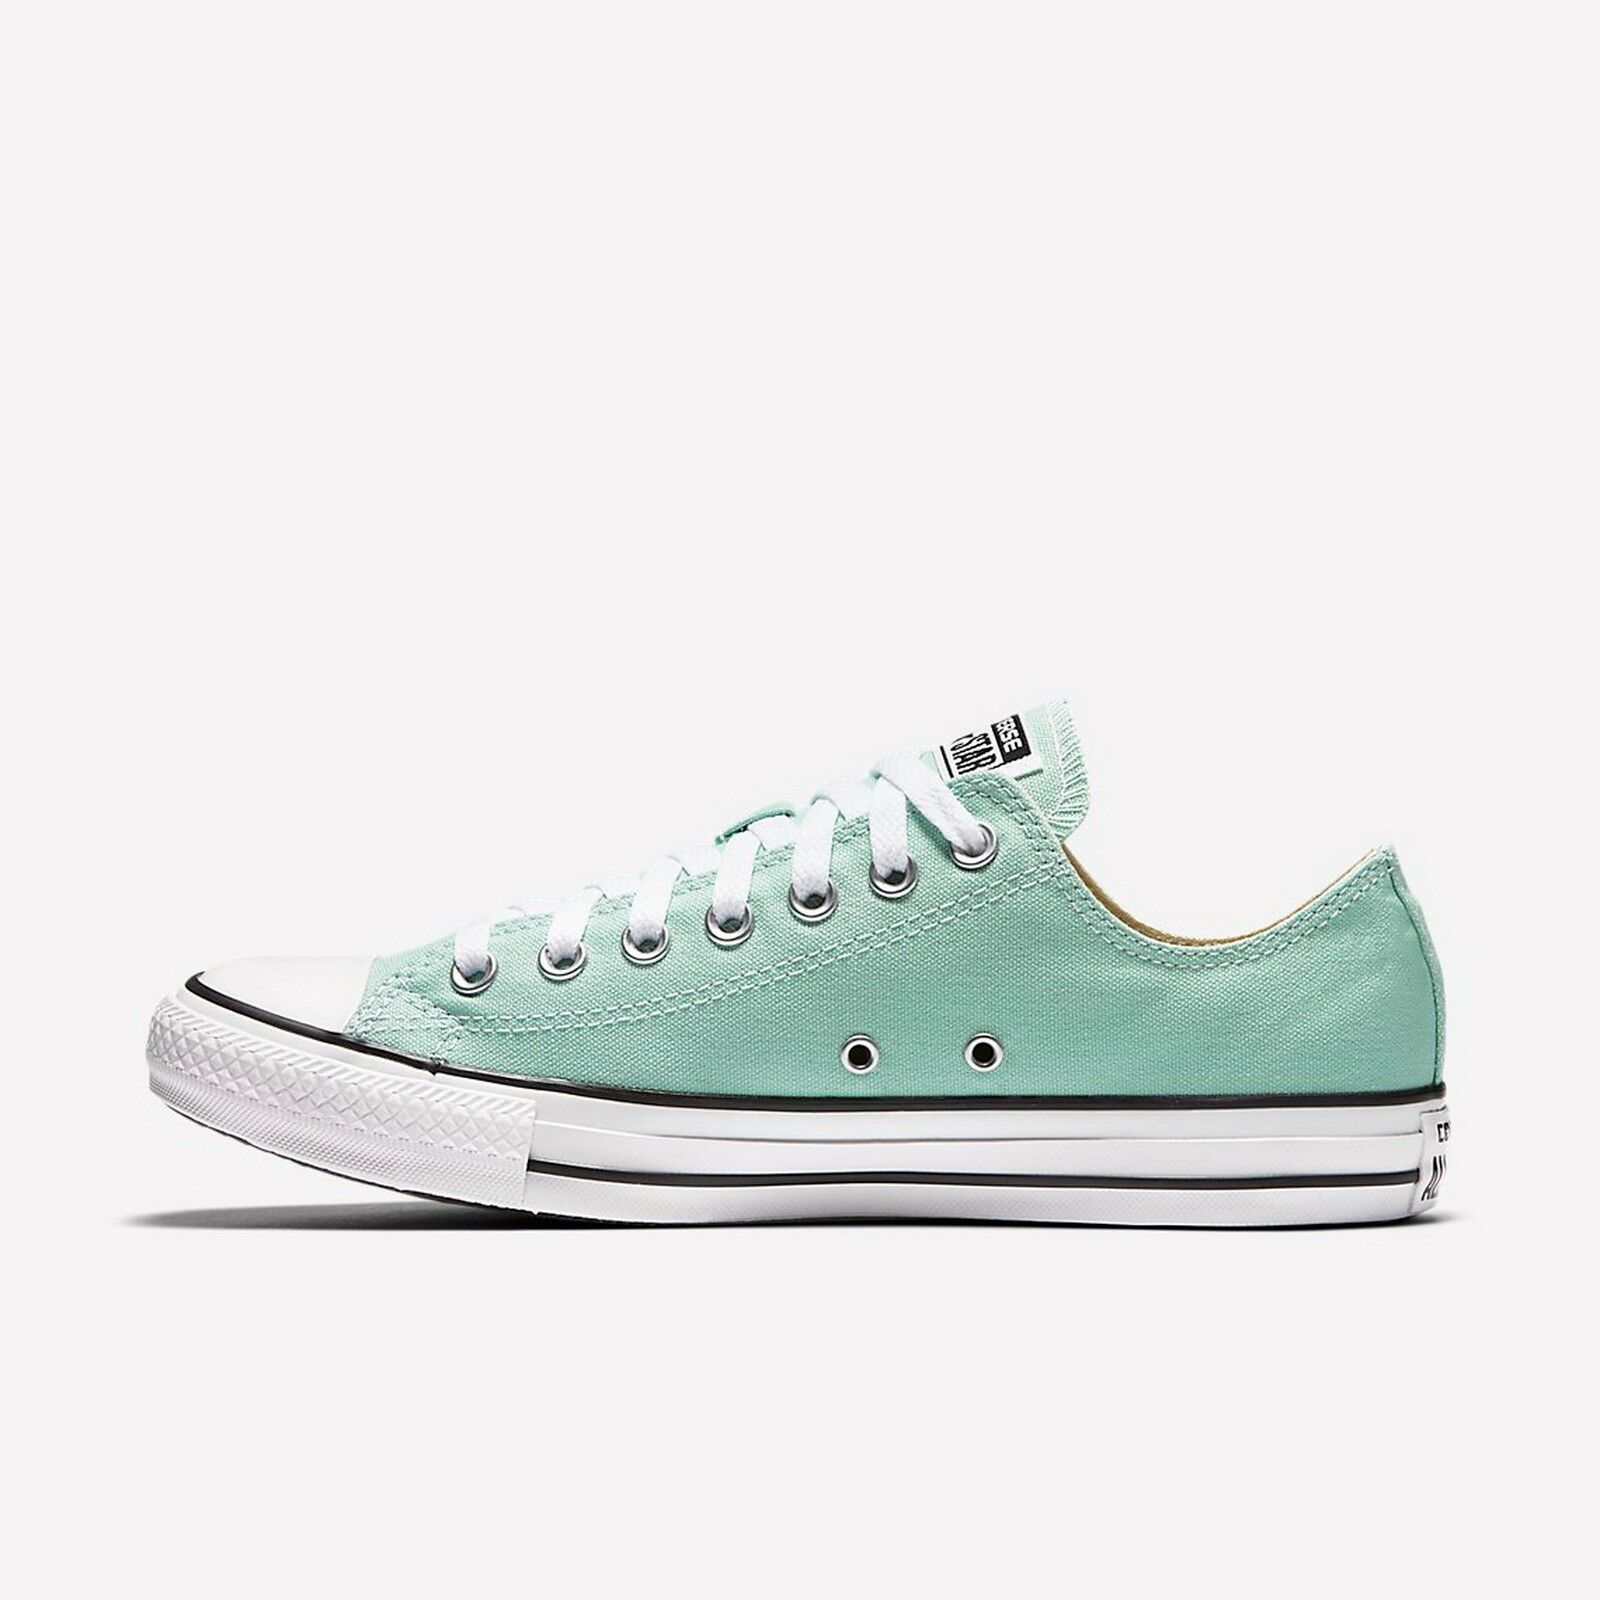 New Converse Chuck Taylor All Star Star All UNISEX cc37a3